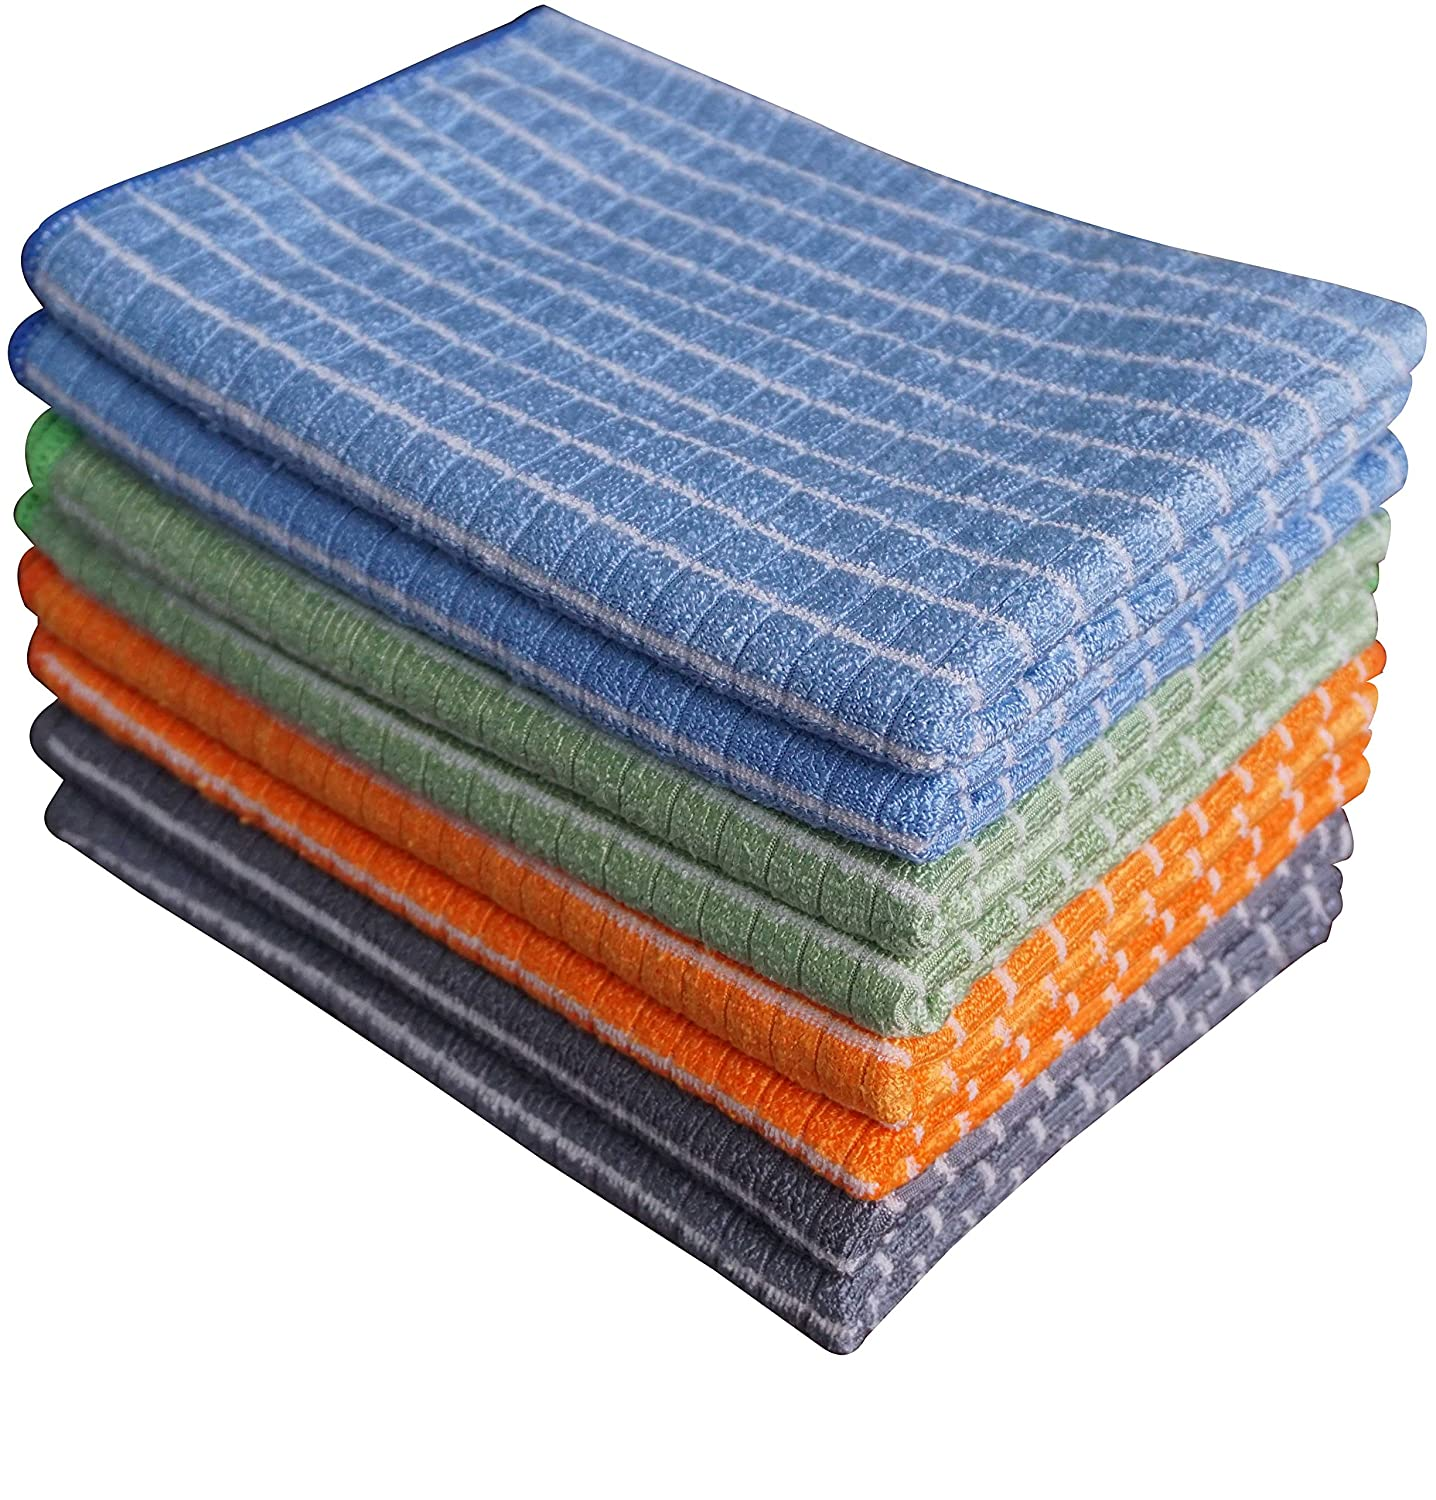 Gryeer Bamboo and Microfiber Kitchen Towels - 8 Pack (2 Cool Gray, 2 Blue, 2 Green, 2 Orange) - Super Soft, Absorbent and Antibacterial Dish Towels, 18 x 26 Inch